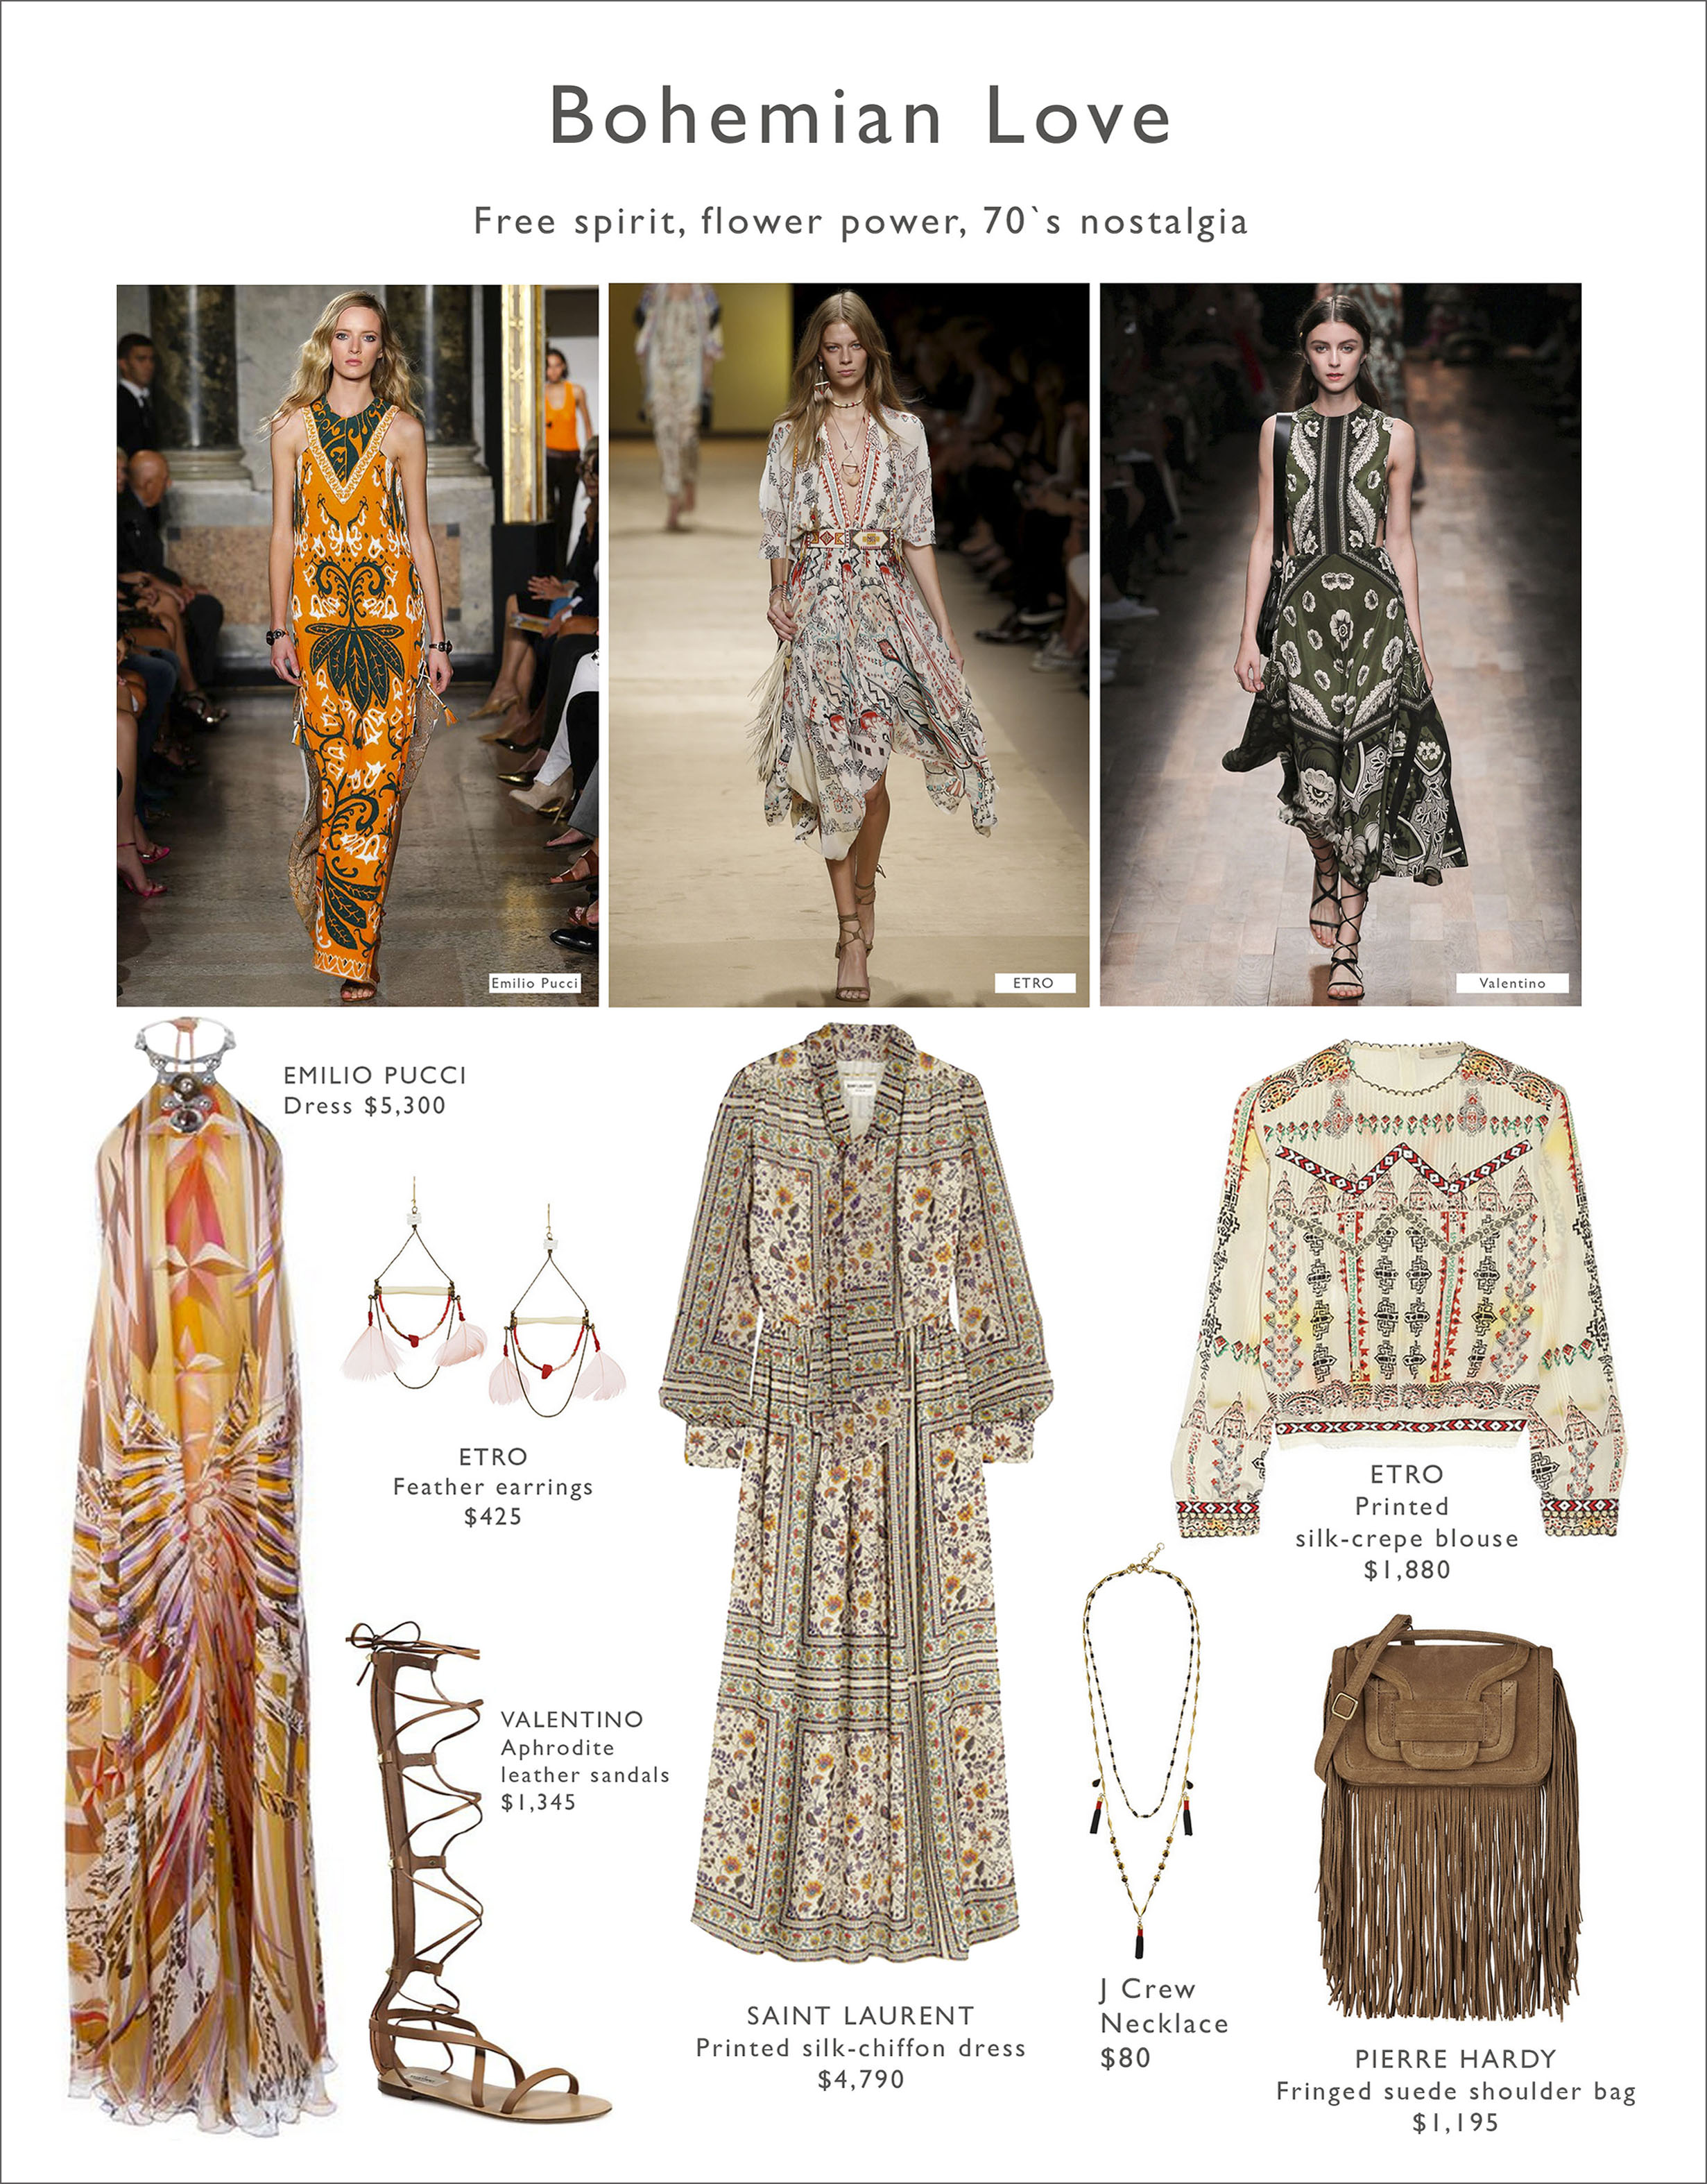 SS15 bohemian love copy